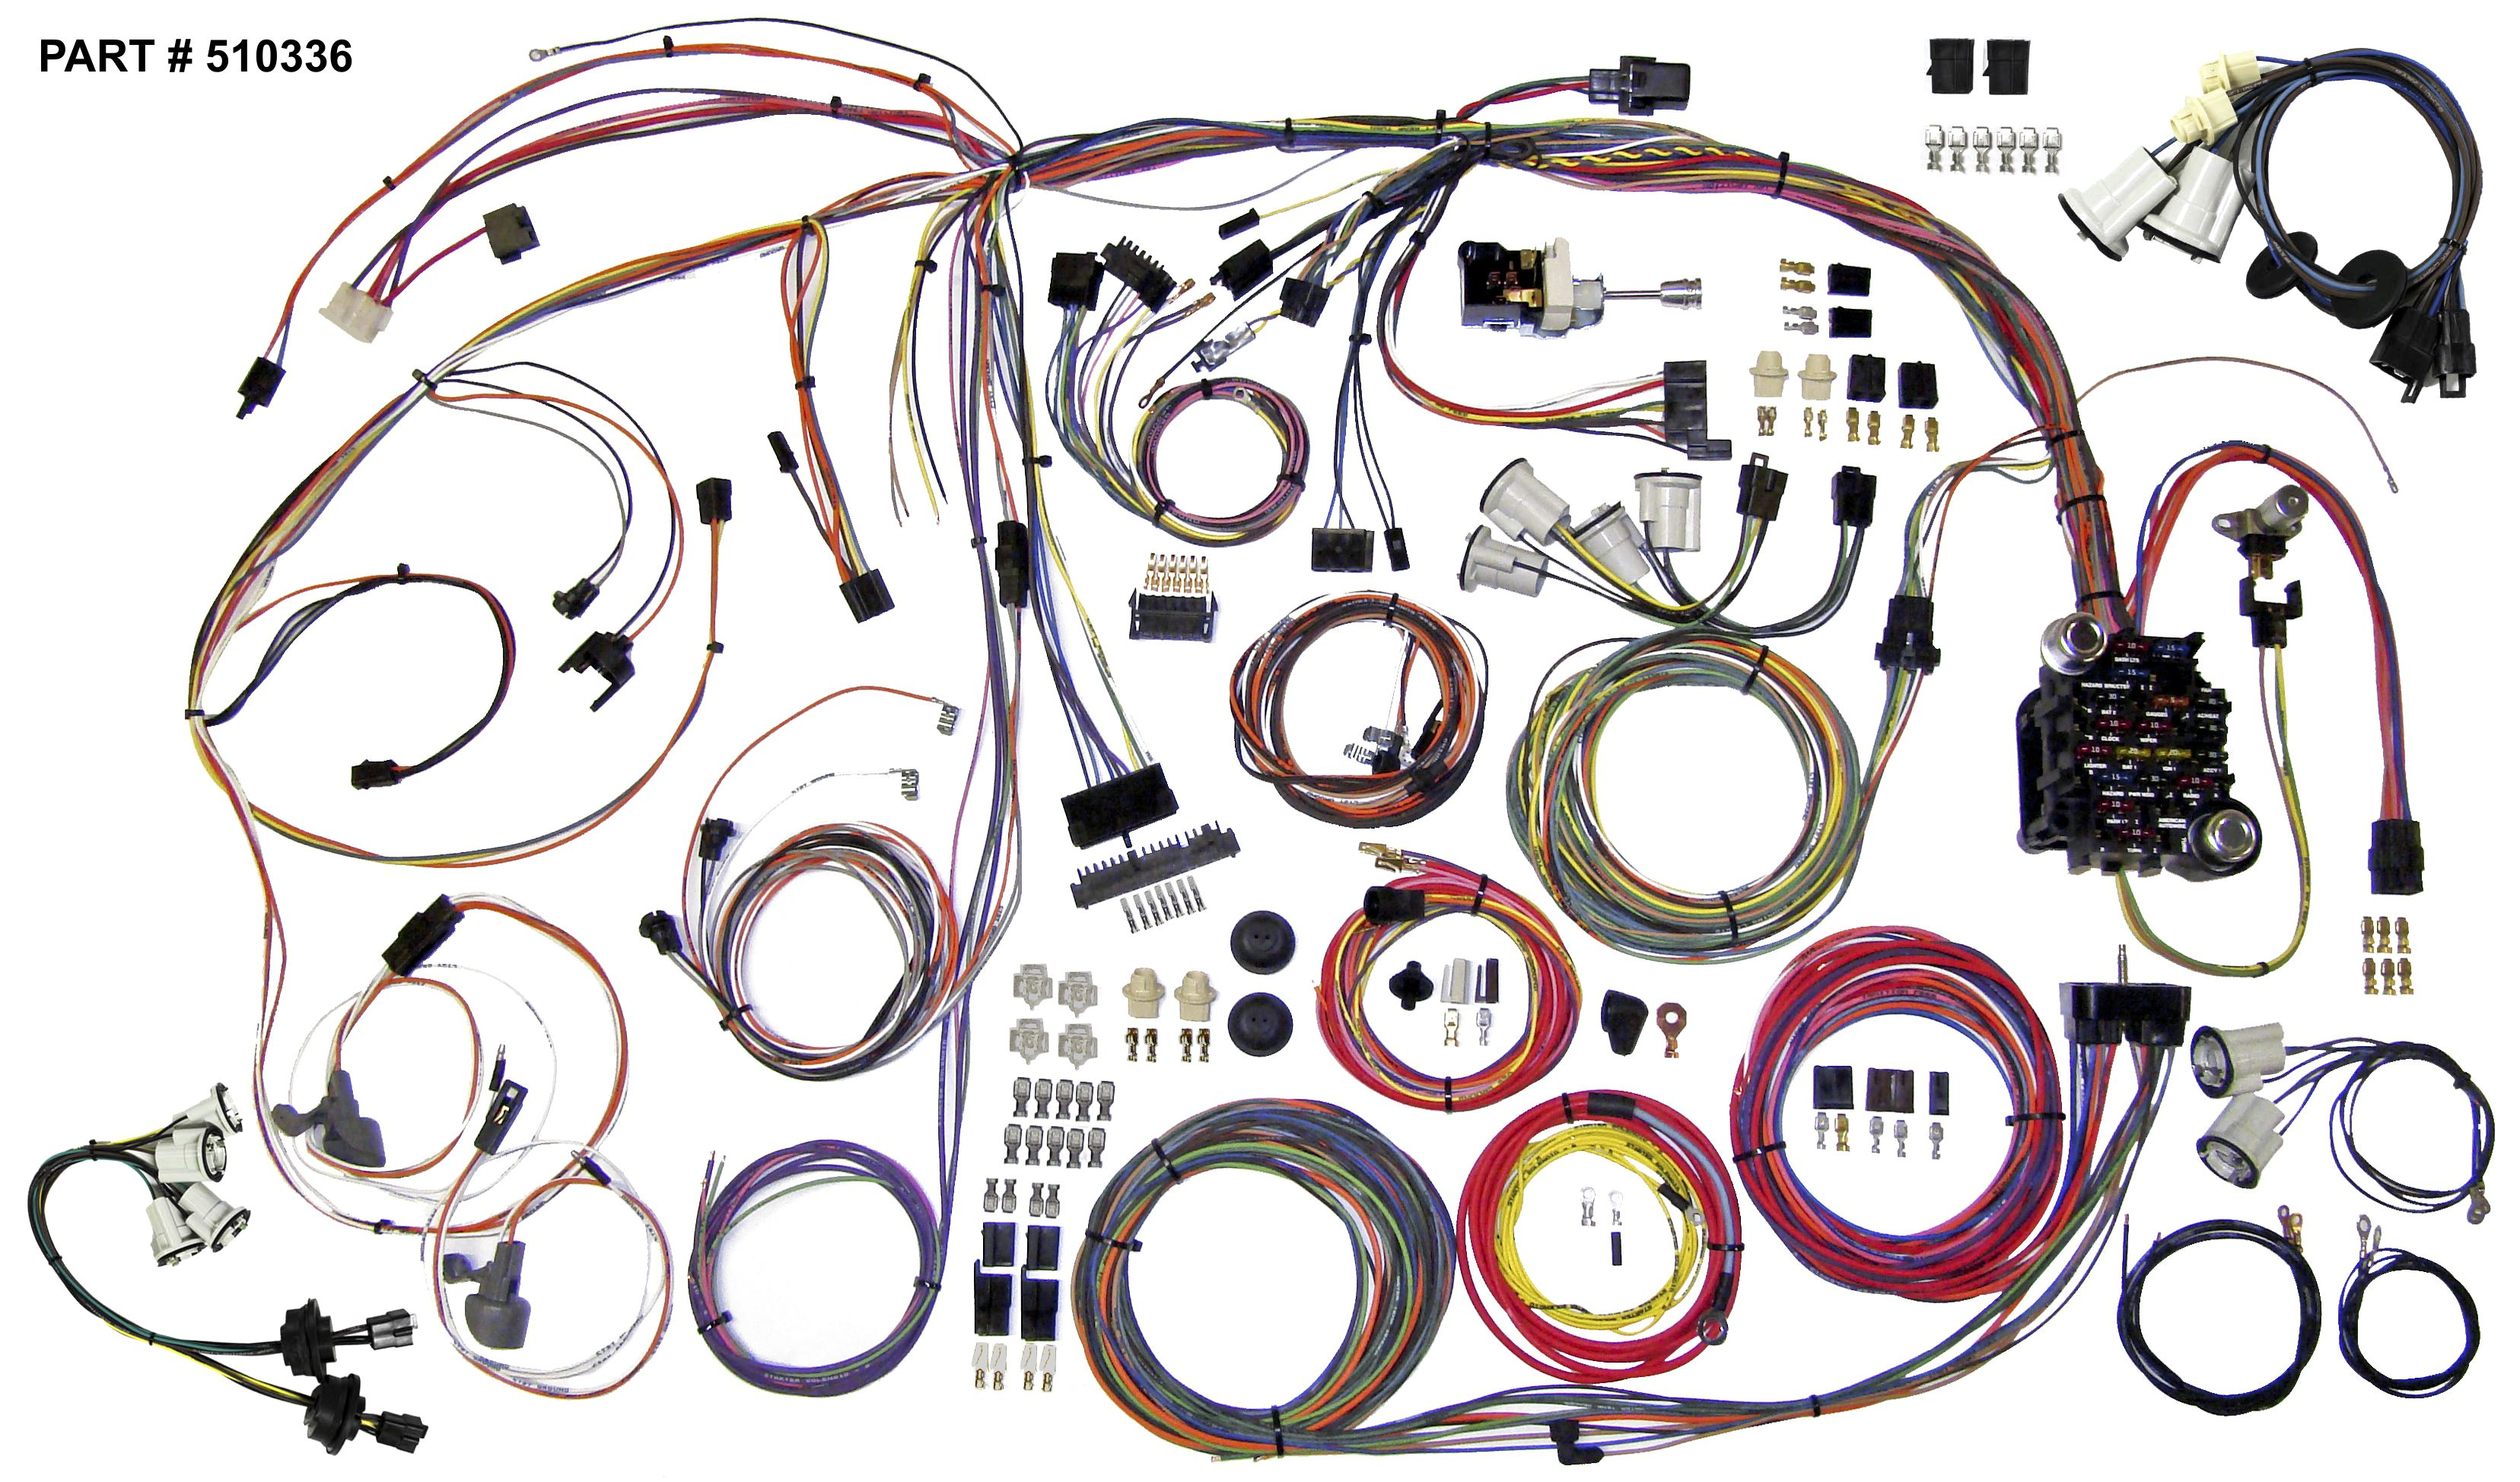 1970 72_510336 1970 1972 chevrolet monte carlo restomod wiring system monte carlo wiring harness at bayanpartner.co